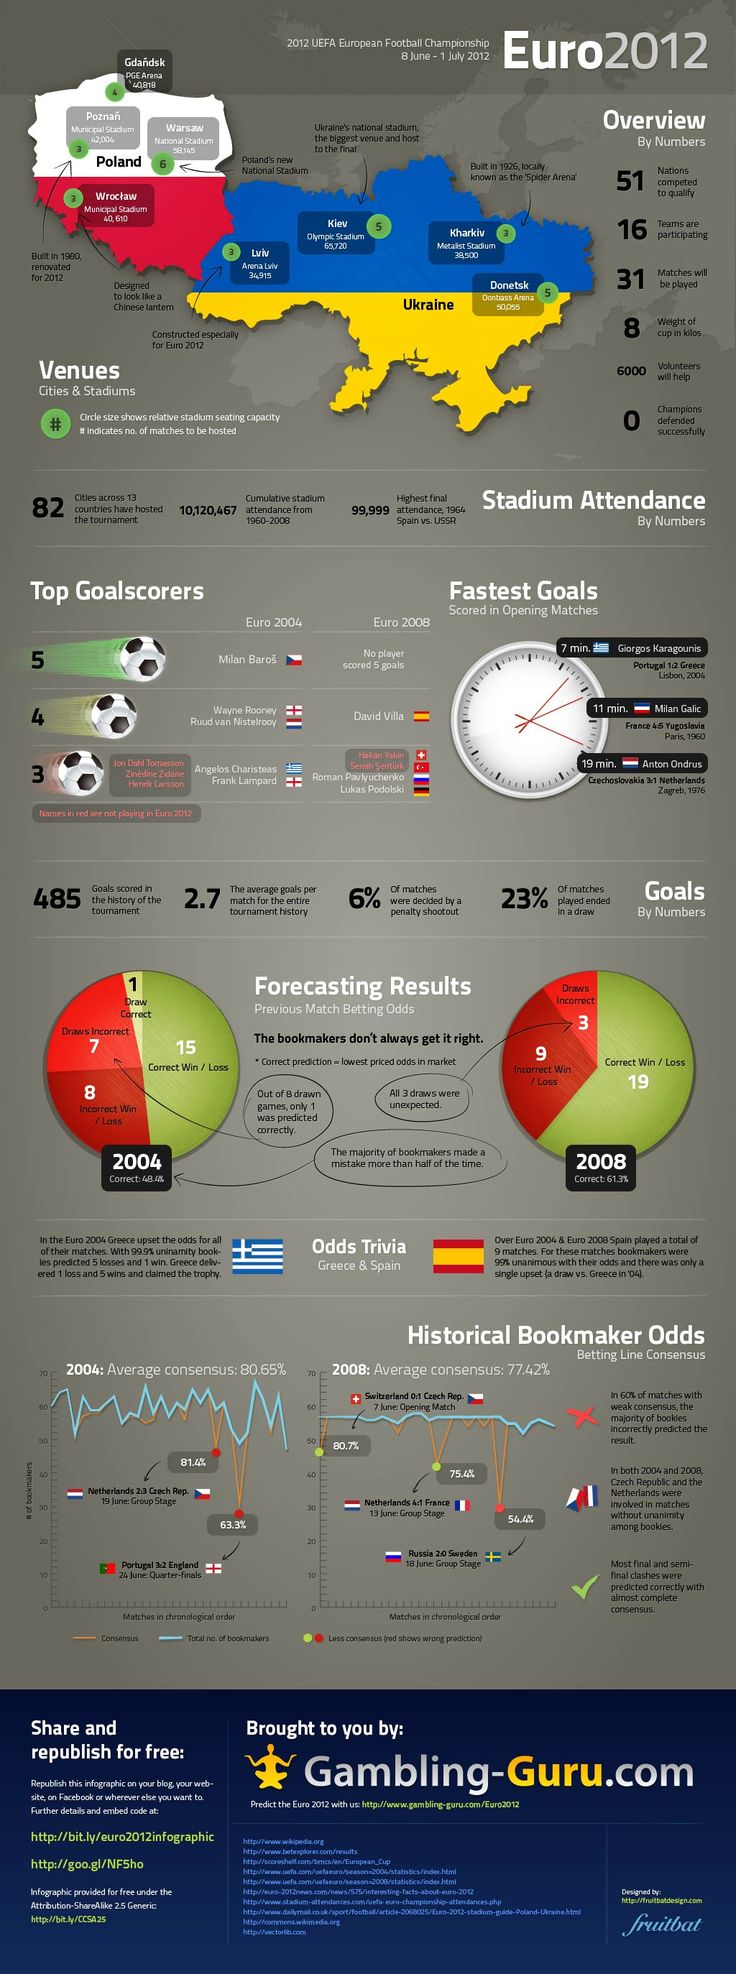 Euro2012 Championship stats and figures via www.mjfield.com (src. www.infographiclist.com)